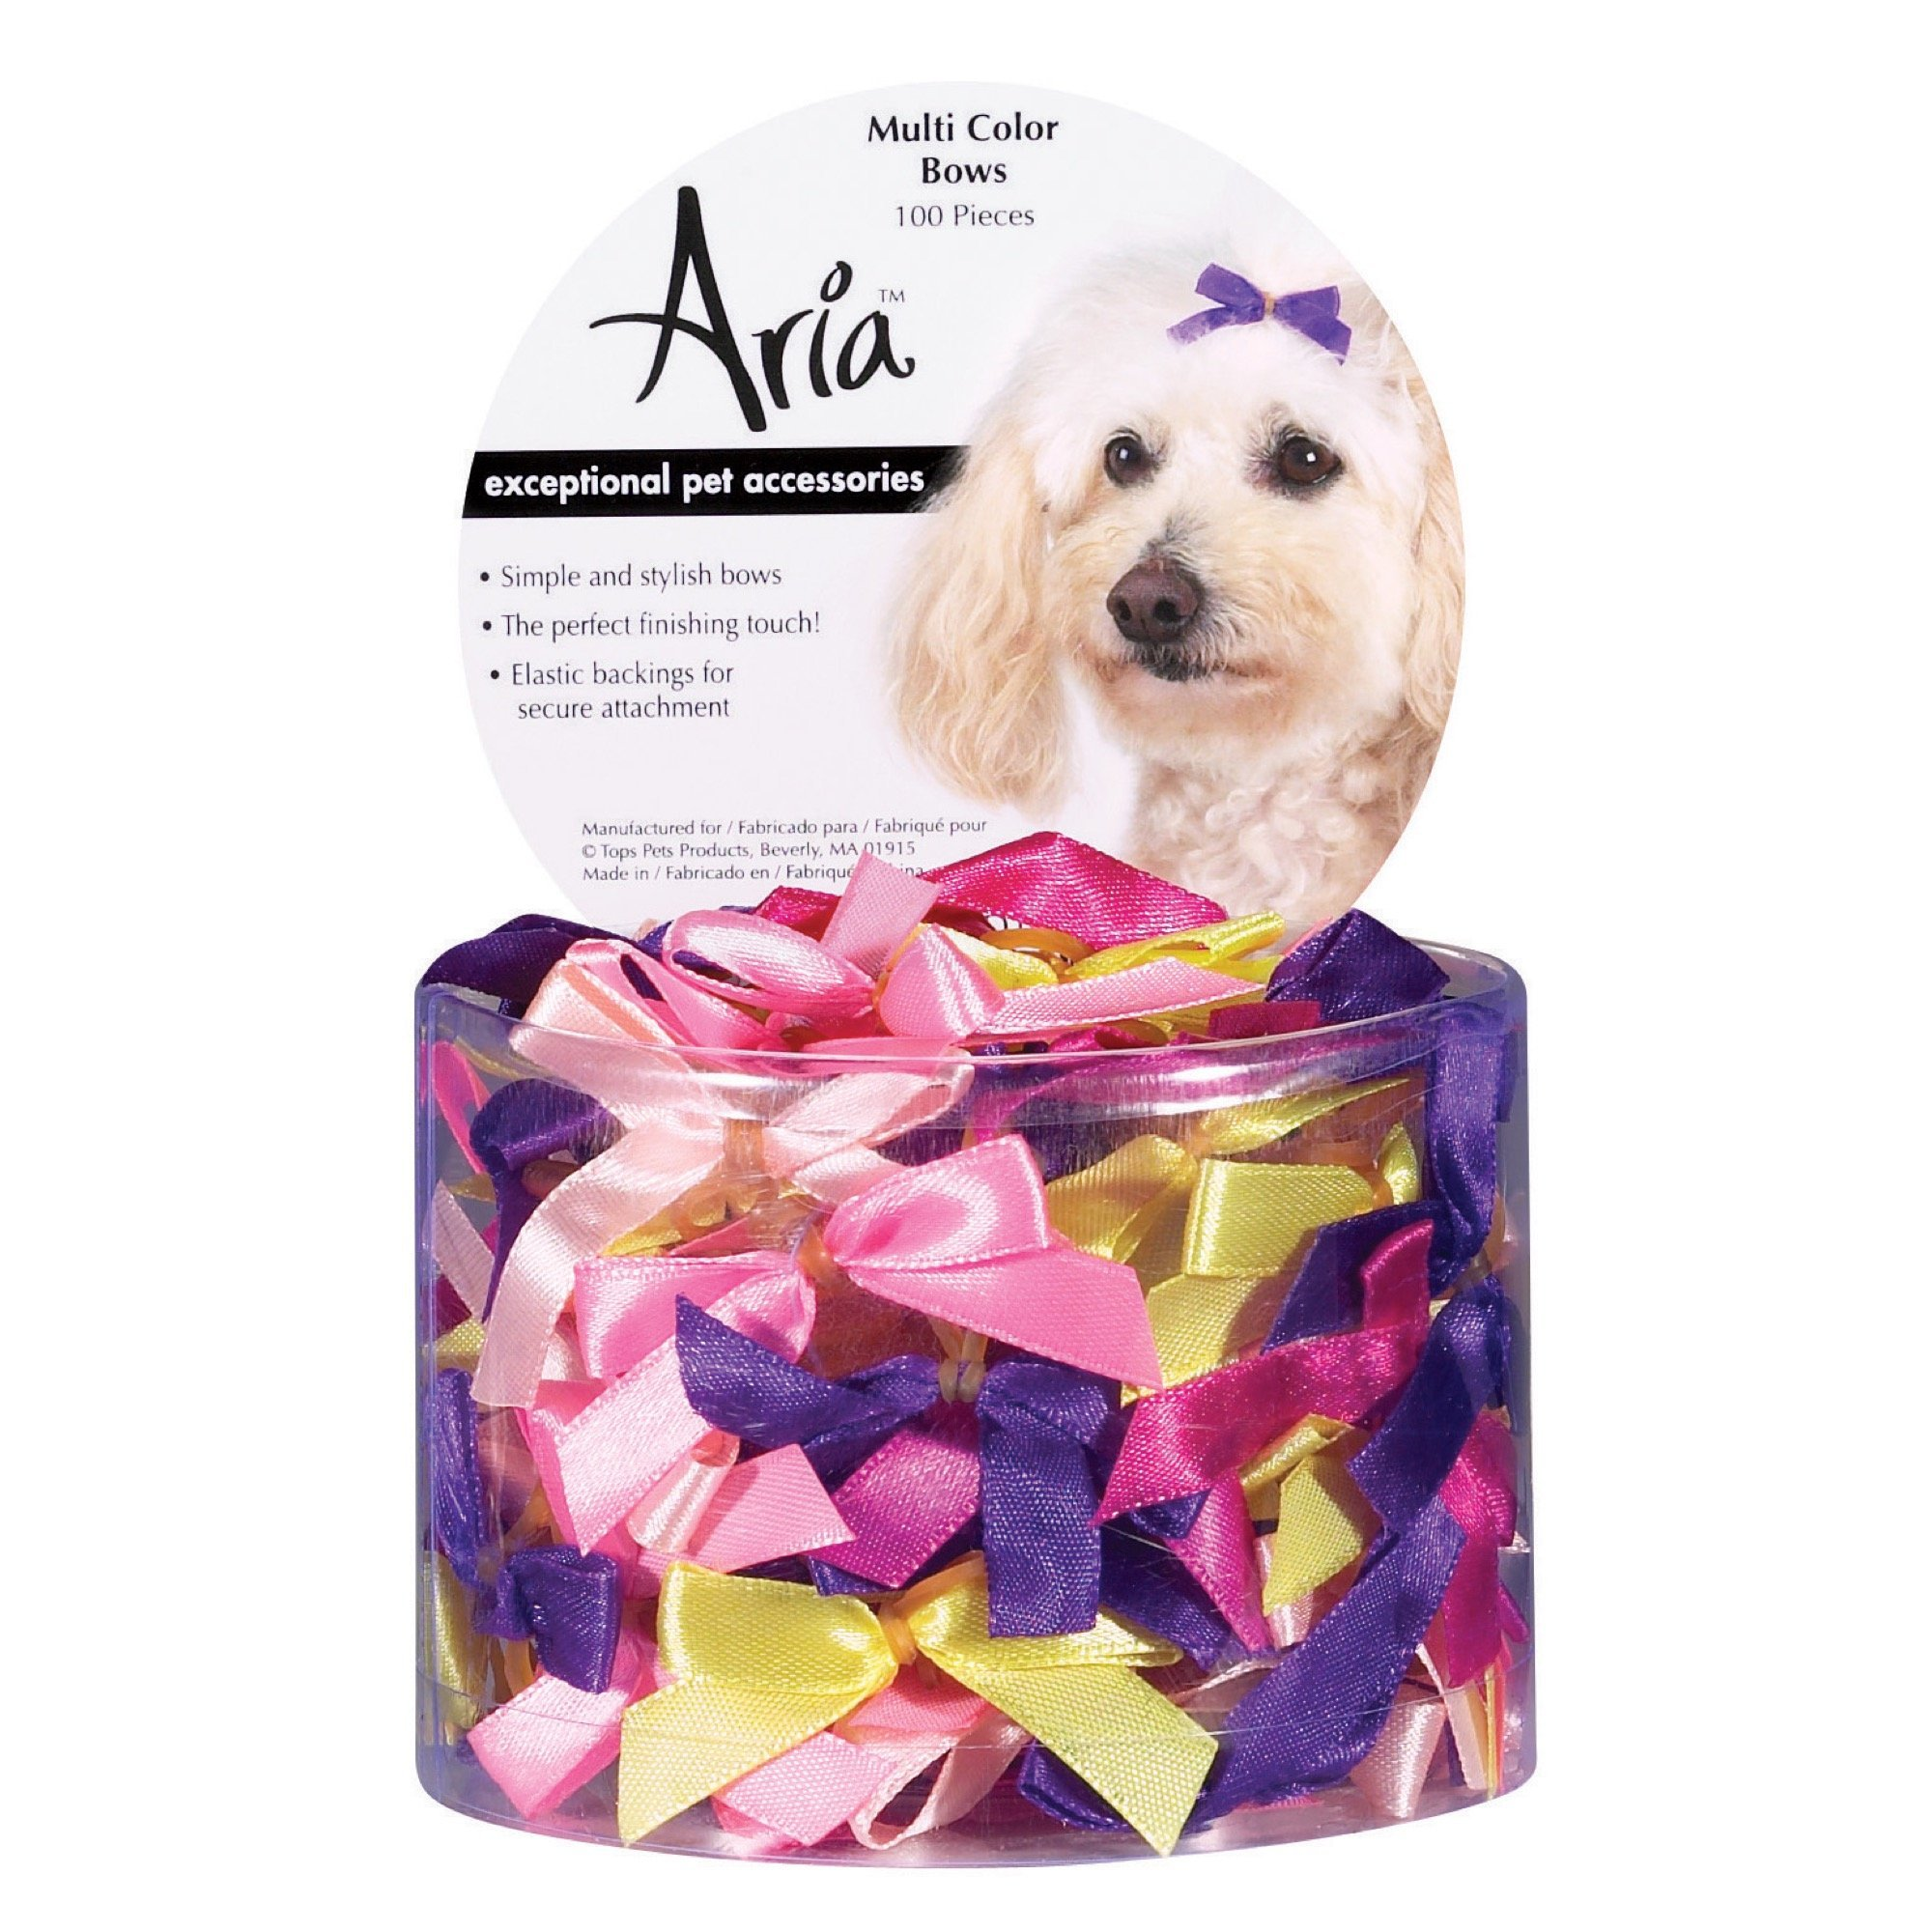 Aria Multi-Colored Bows for Dogs, 100-Piece Canisters by Aria